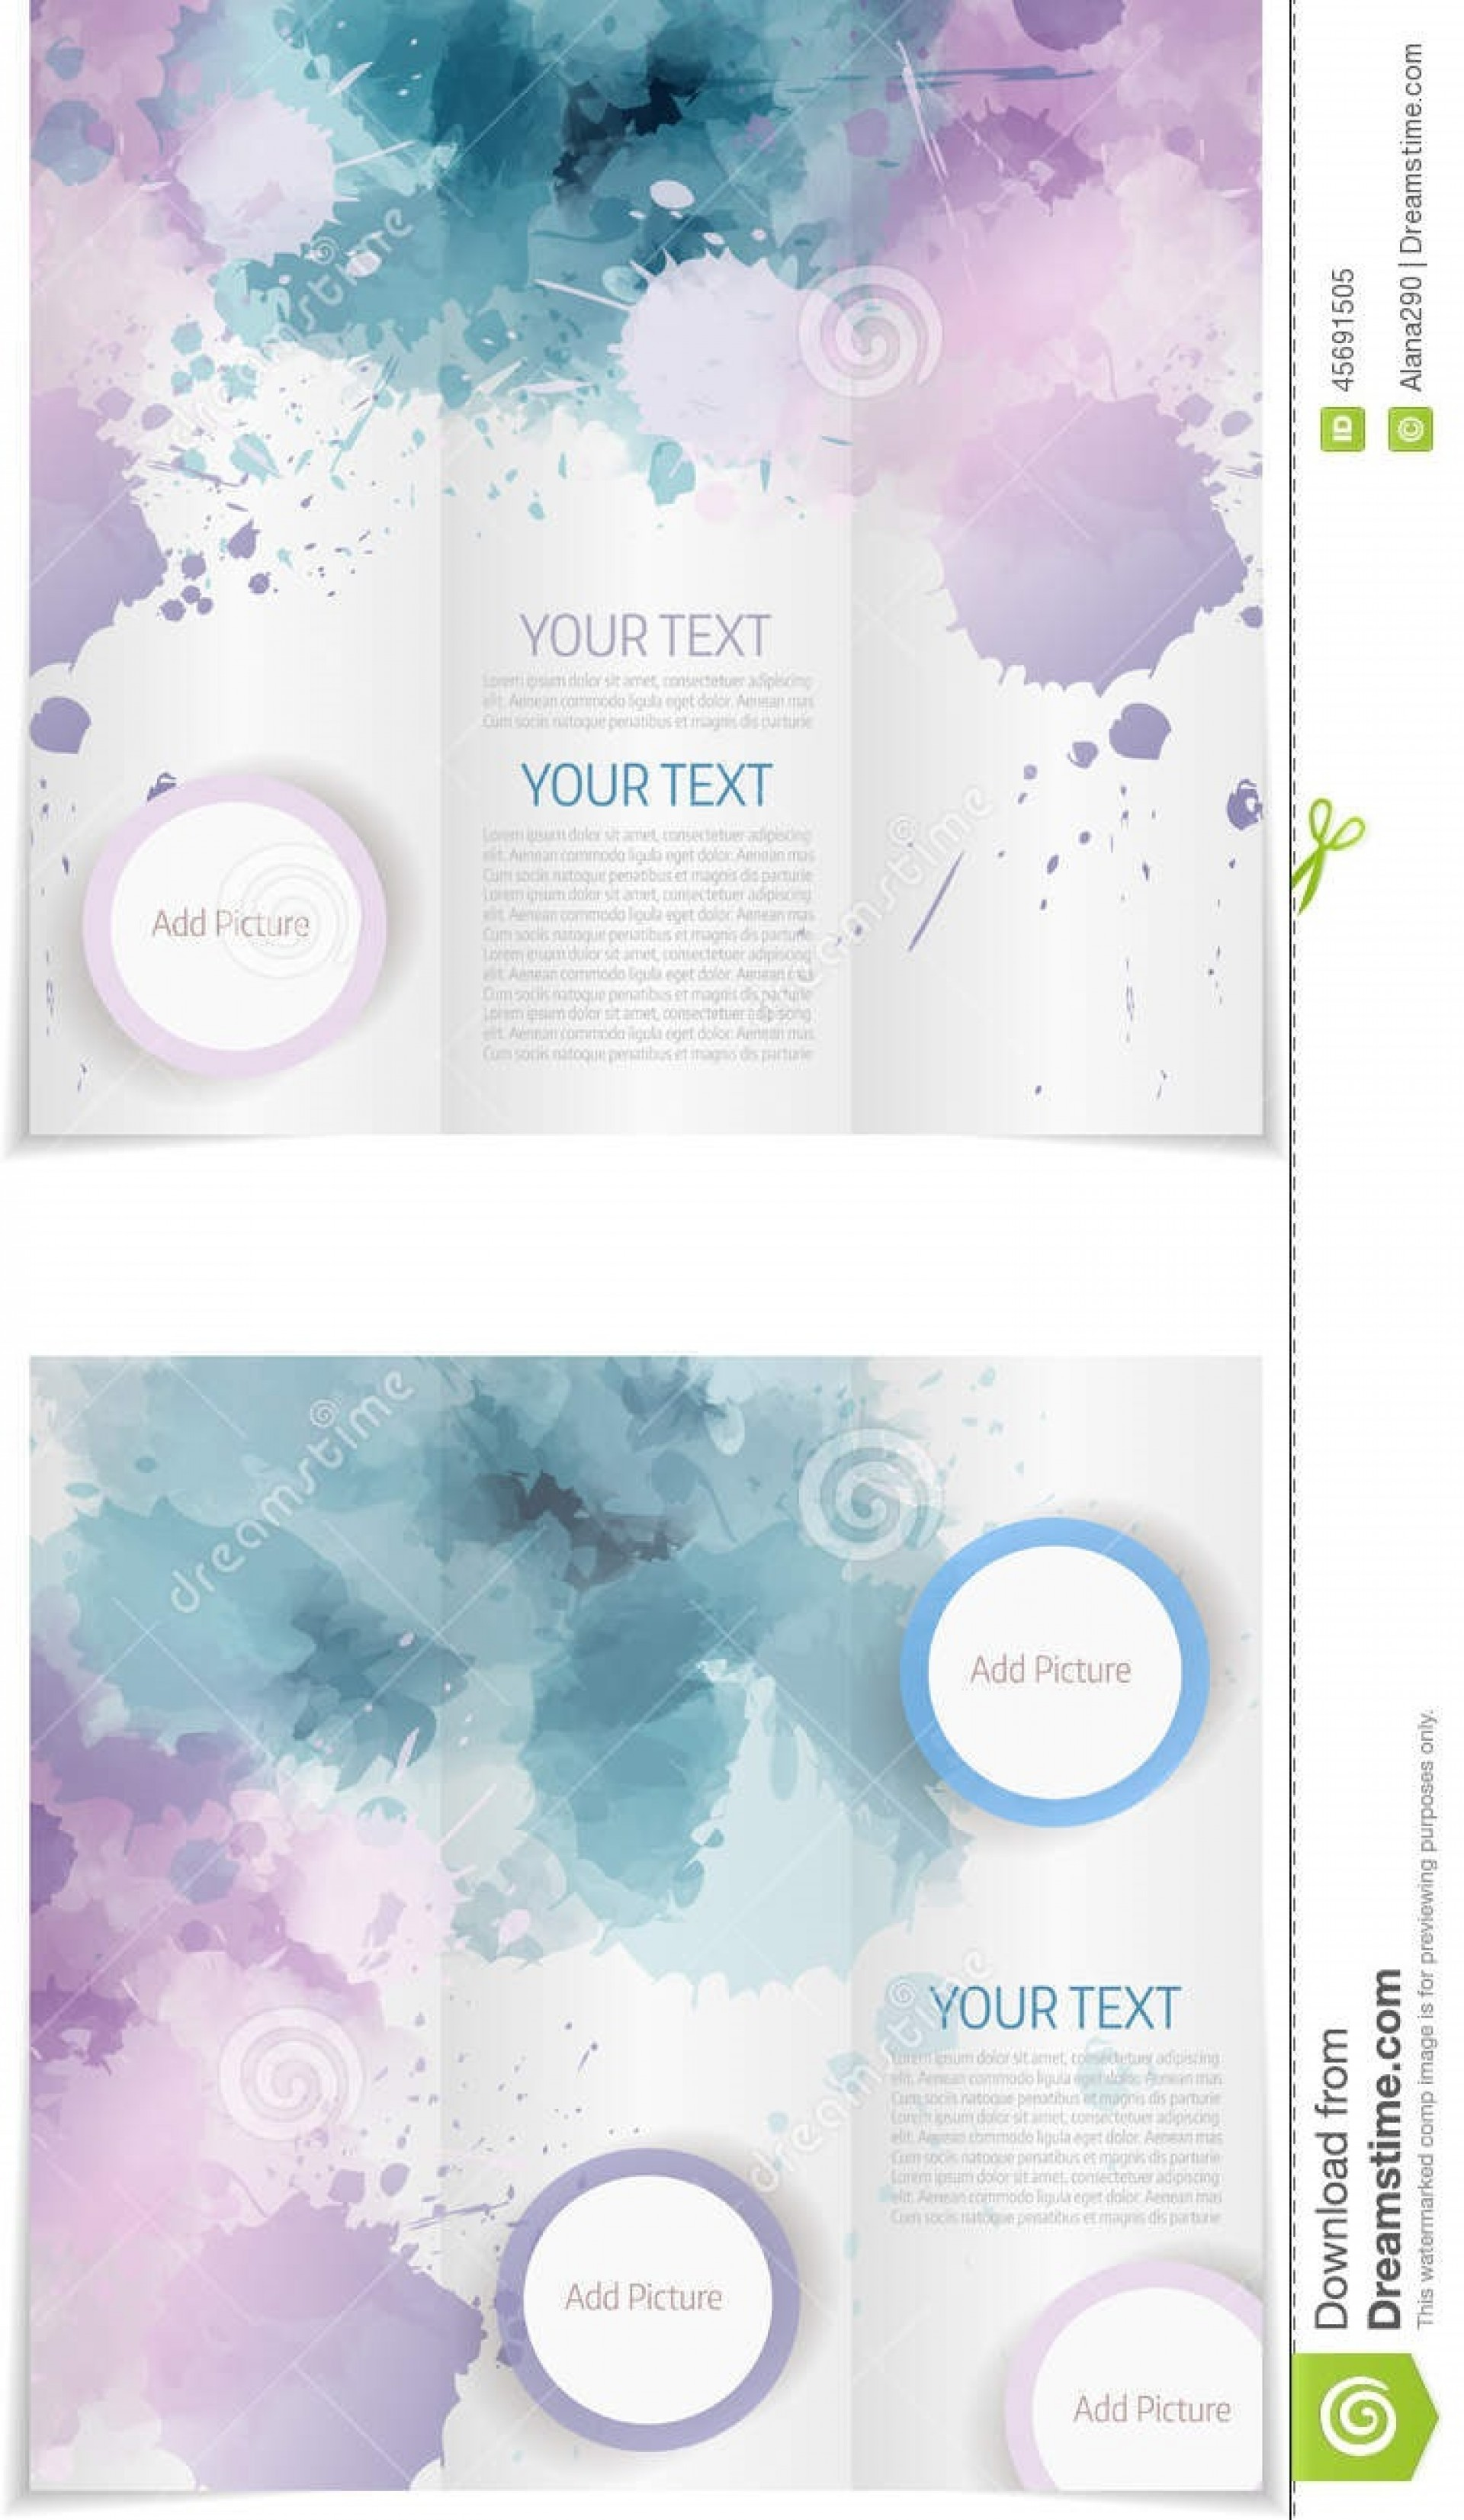 009 Stupendou Publisher Brochure Template Free Inspiration  Tri Fold Download Microsoft M1920